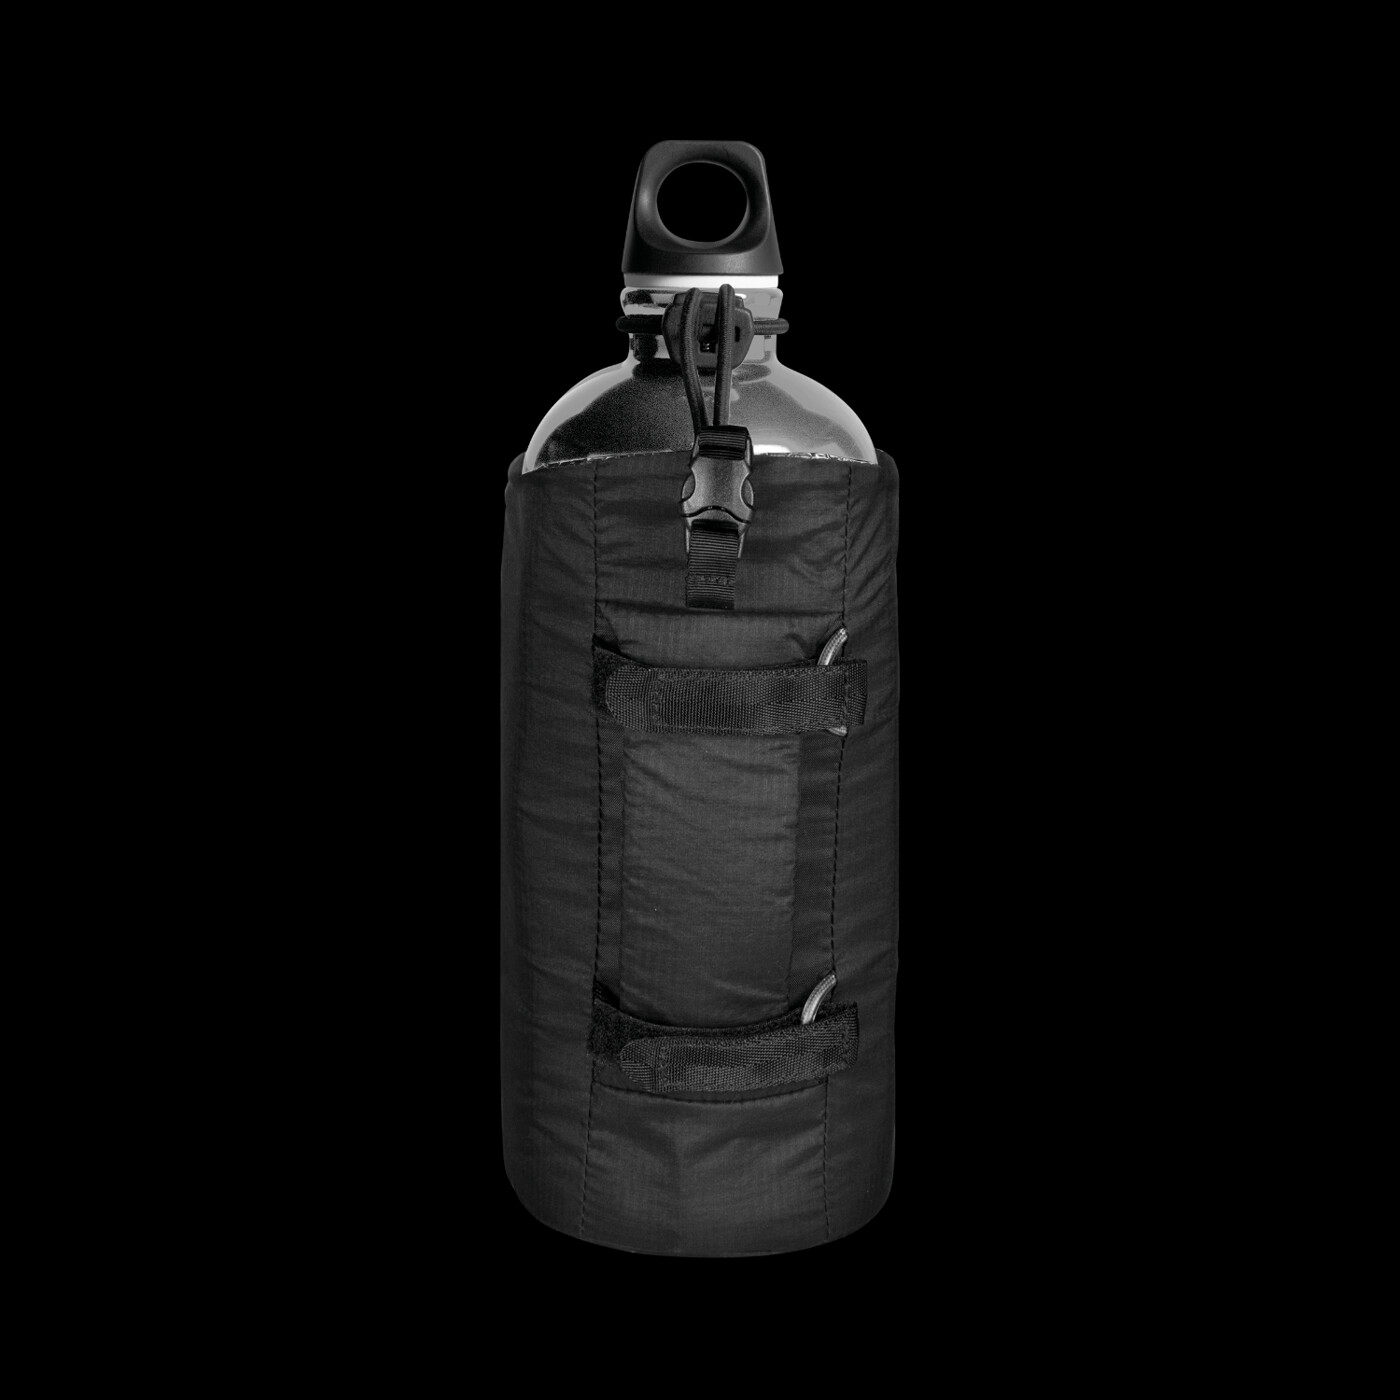 Add-on bottle holder insulated Mammut